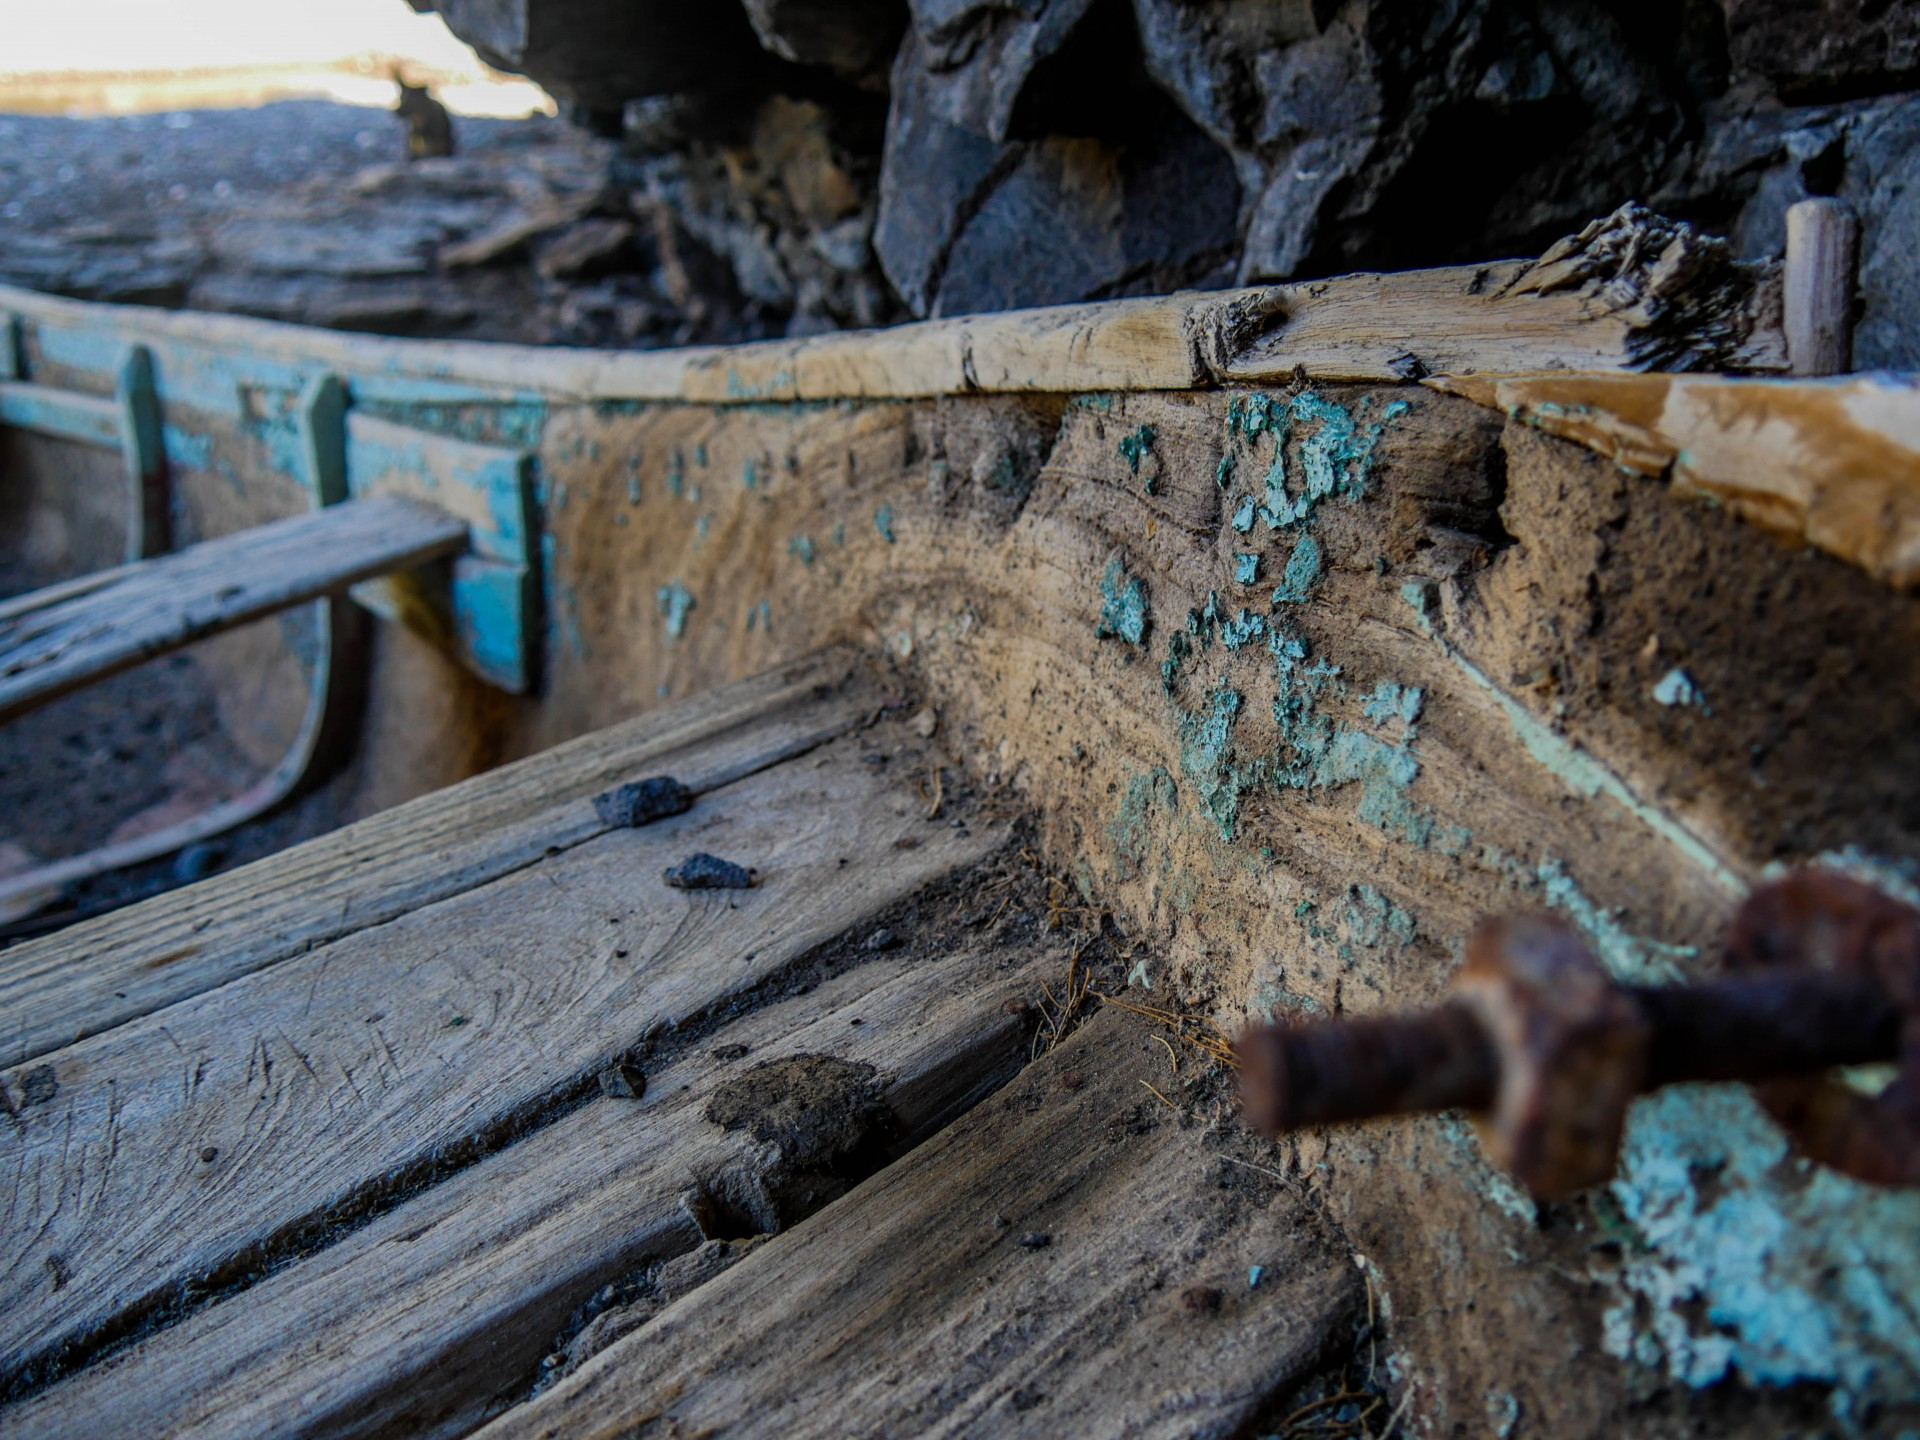 An old sailing canoe abandoned in a cave along the Baja coast.